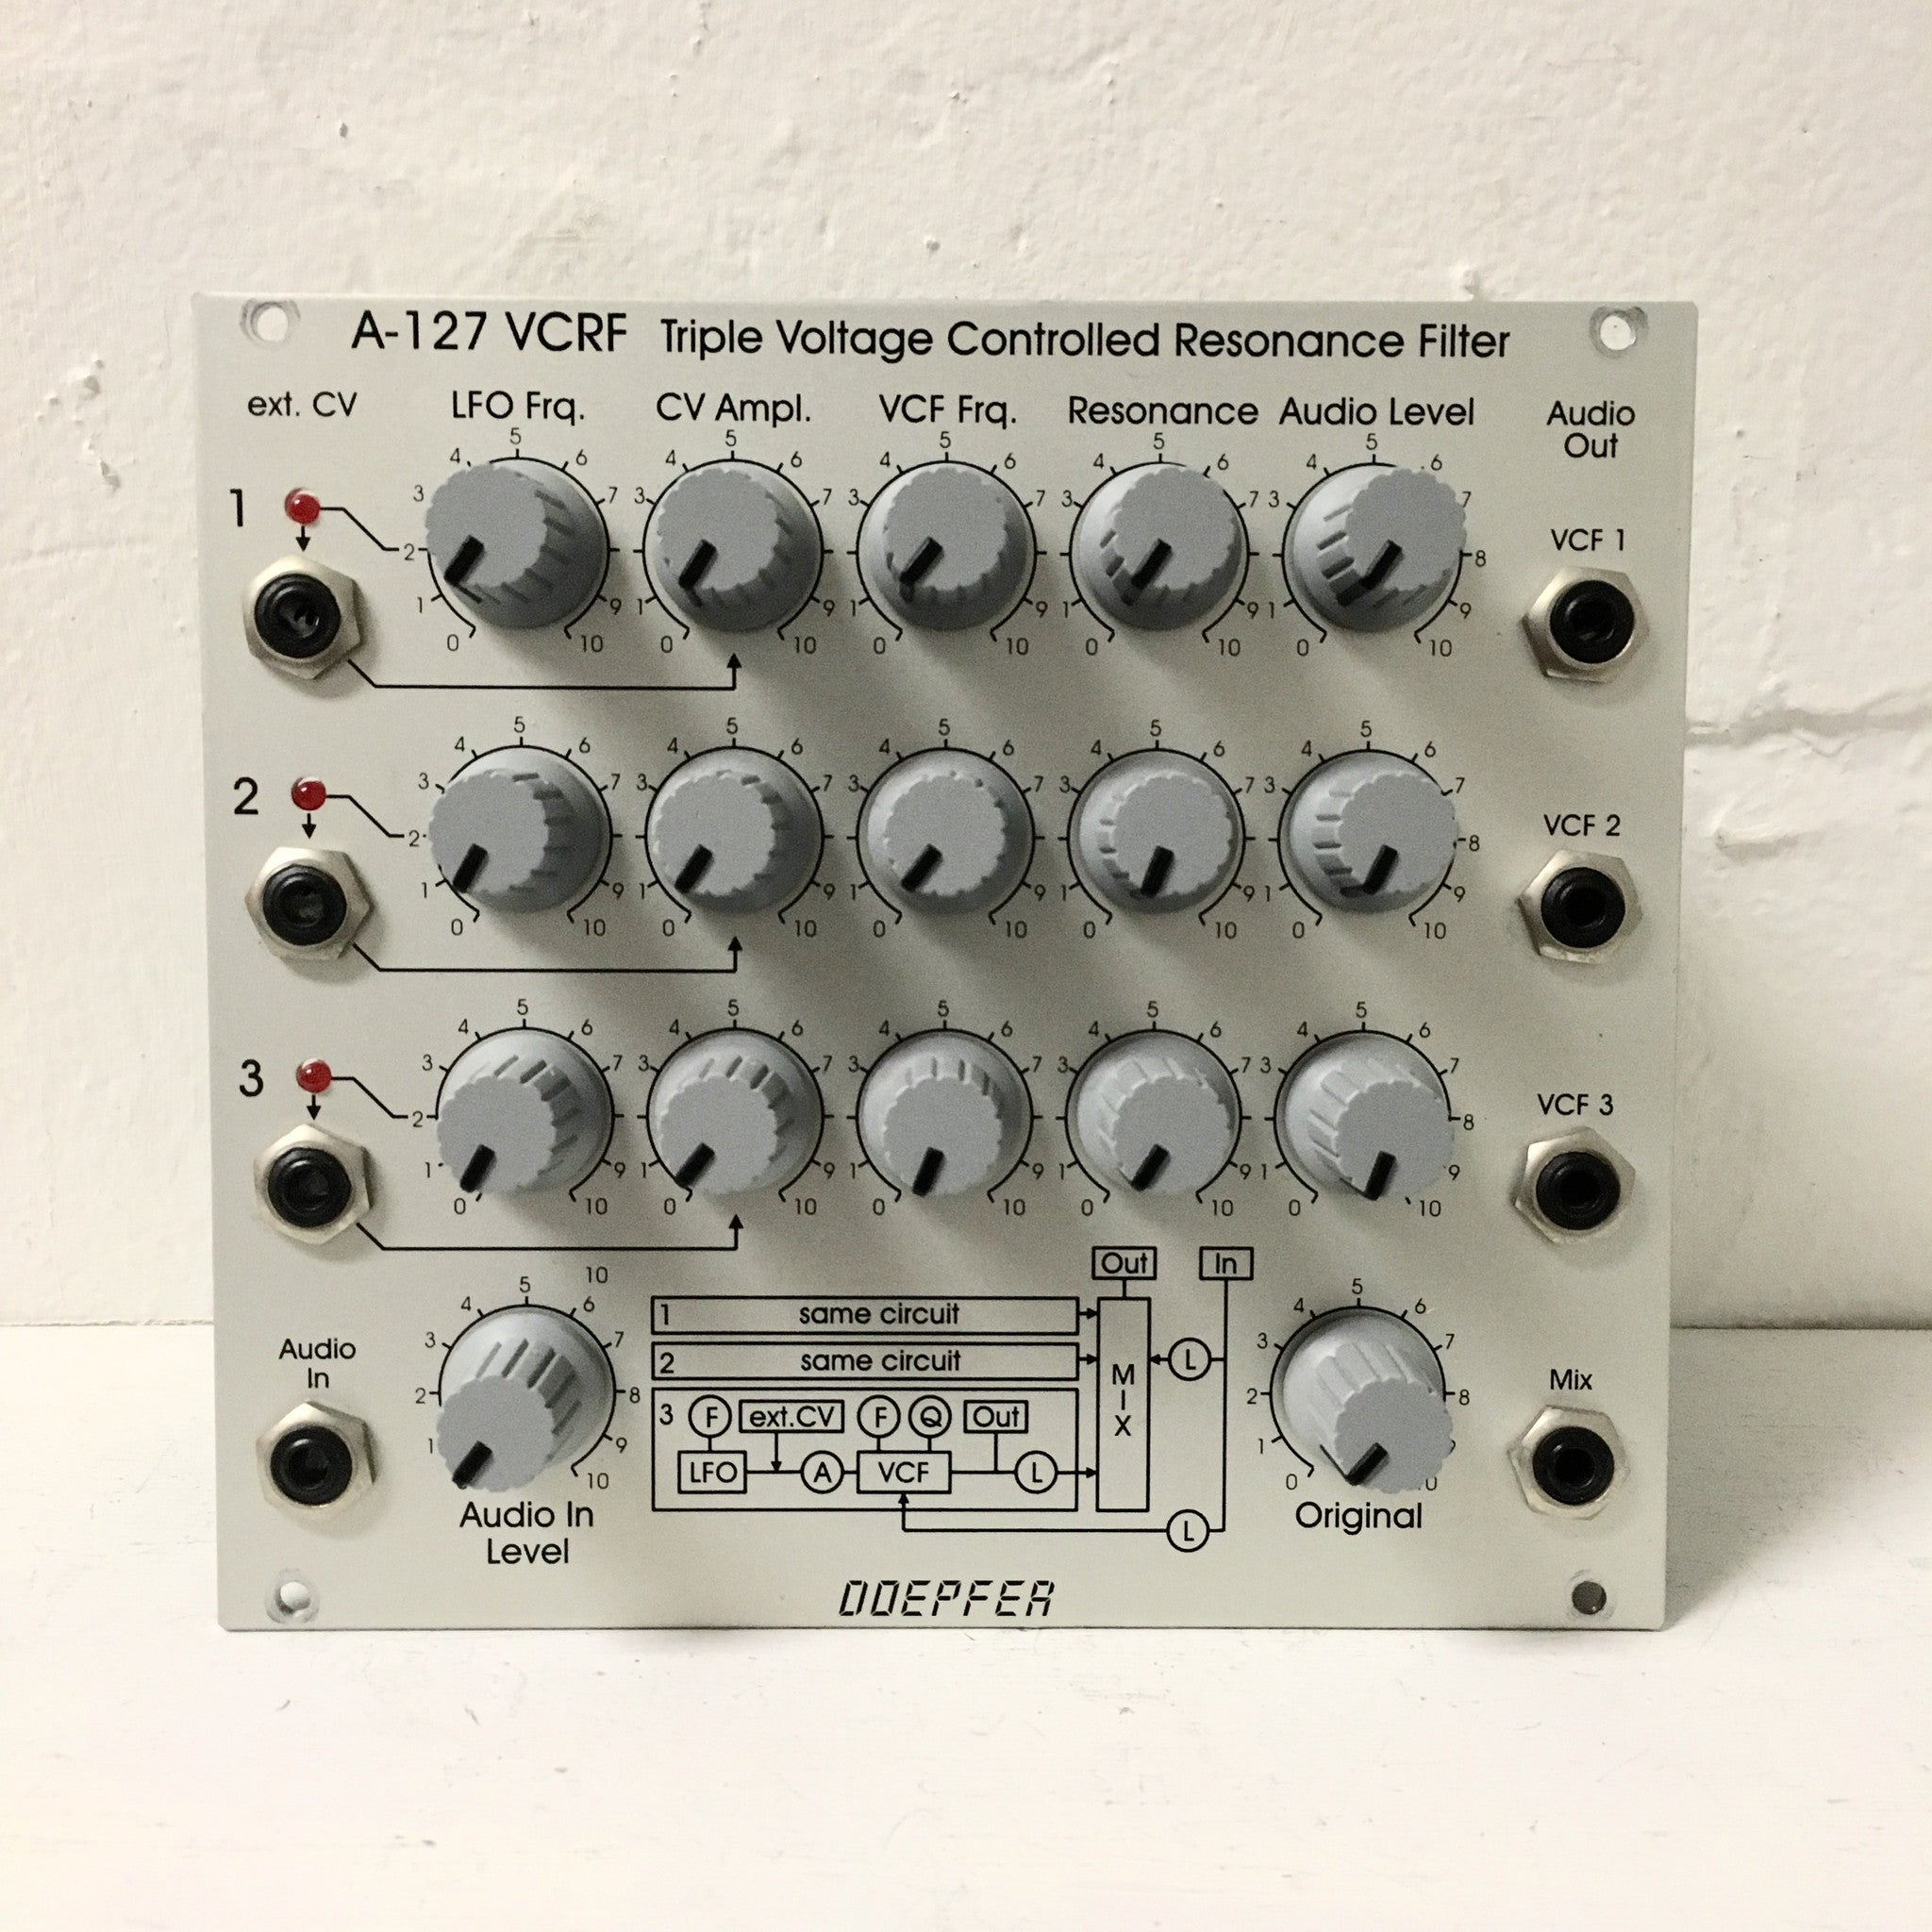 Doepfer A-127 VCRF Triple Voltage Controlled Resonance Filter